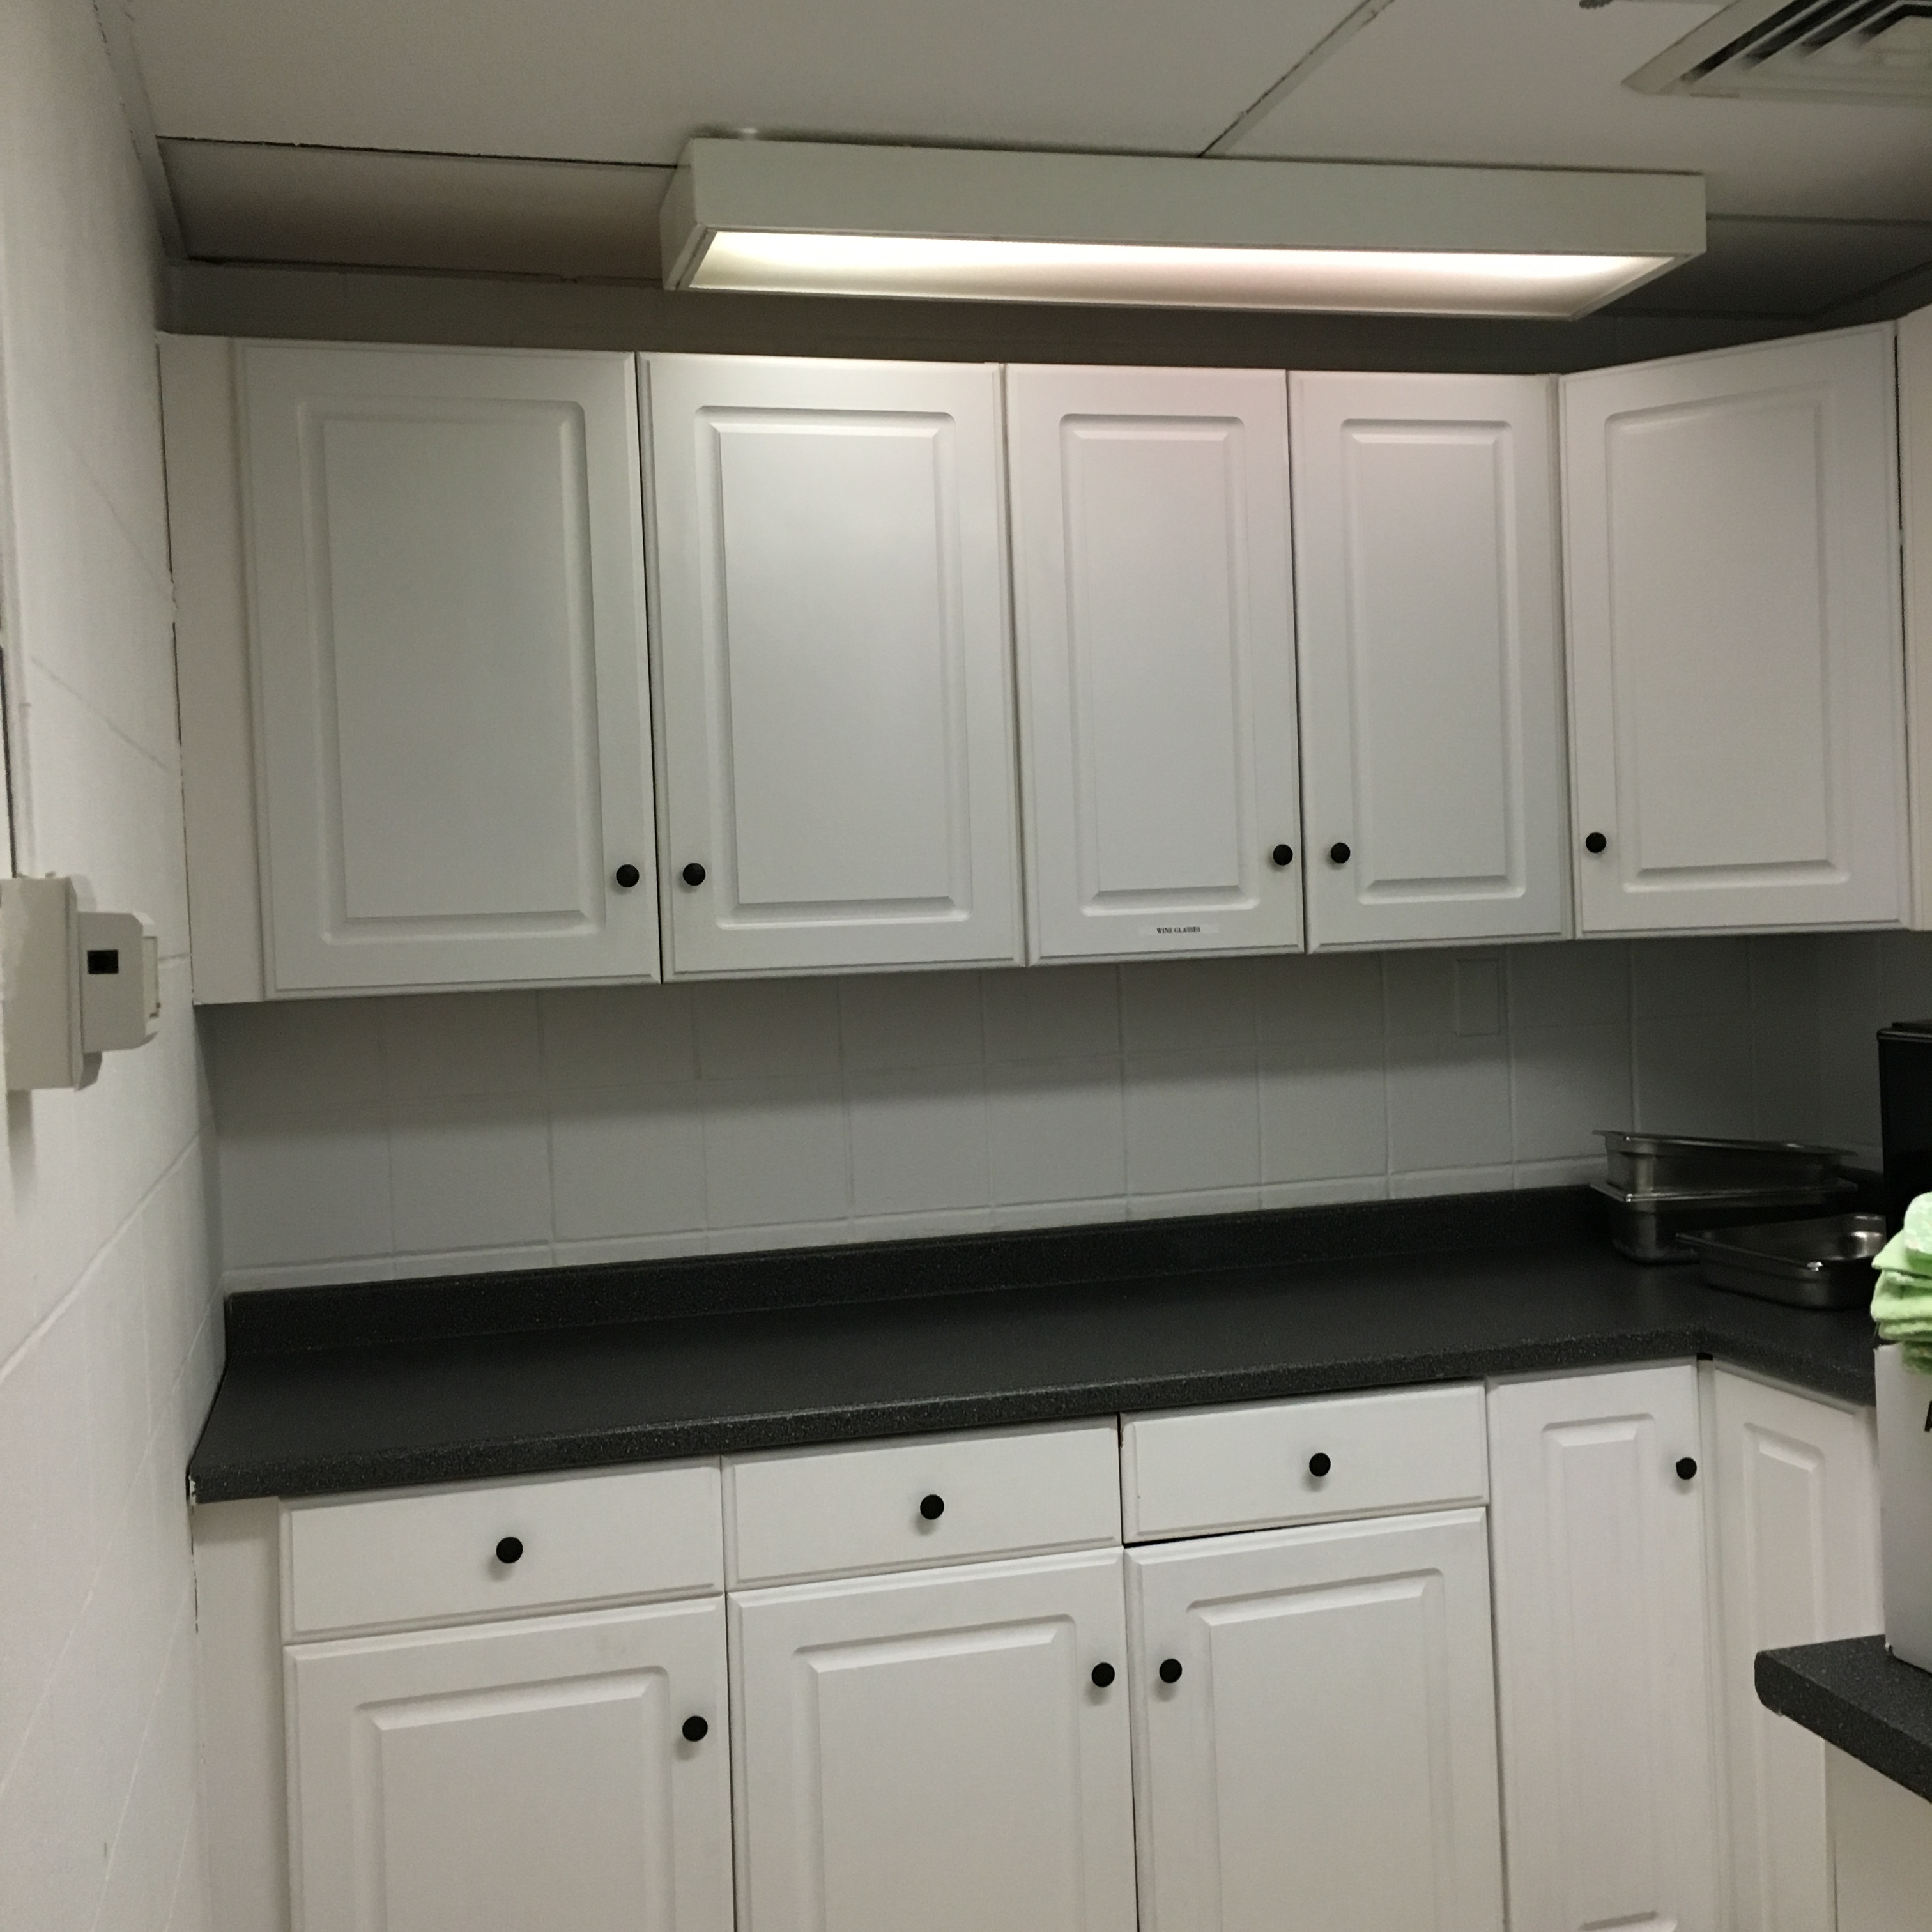 Main Kitchen Enfield Ct: Eagle Scout Renovates Dietary Kitchen